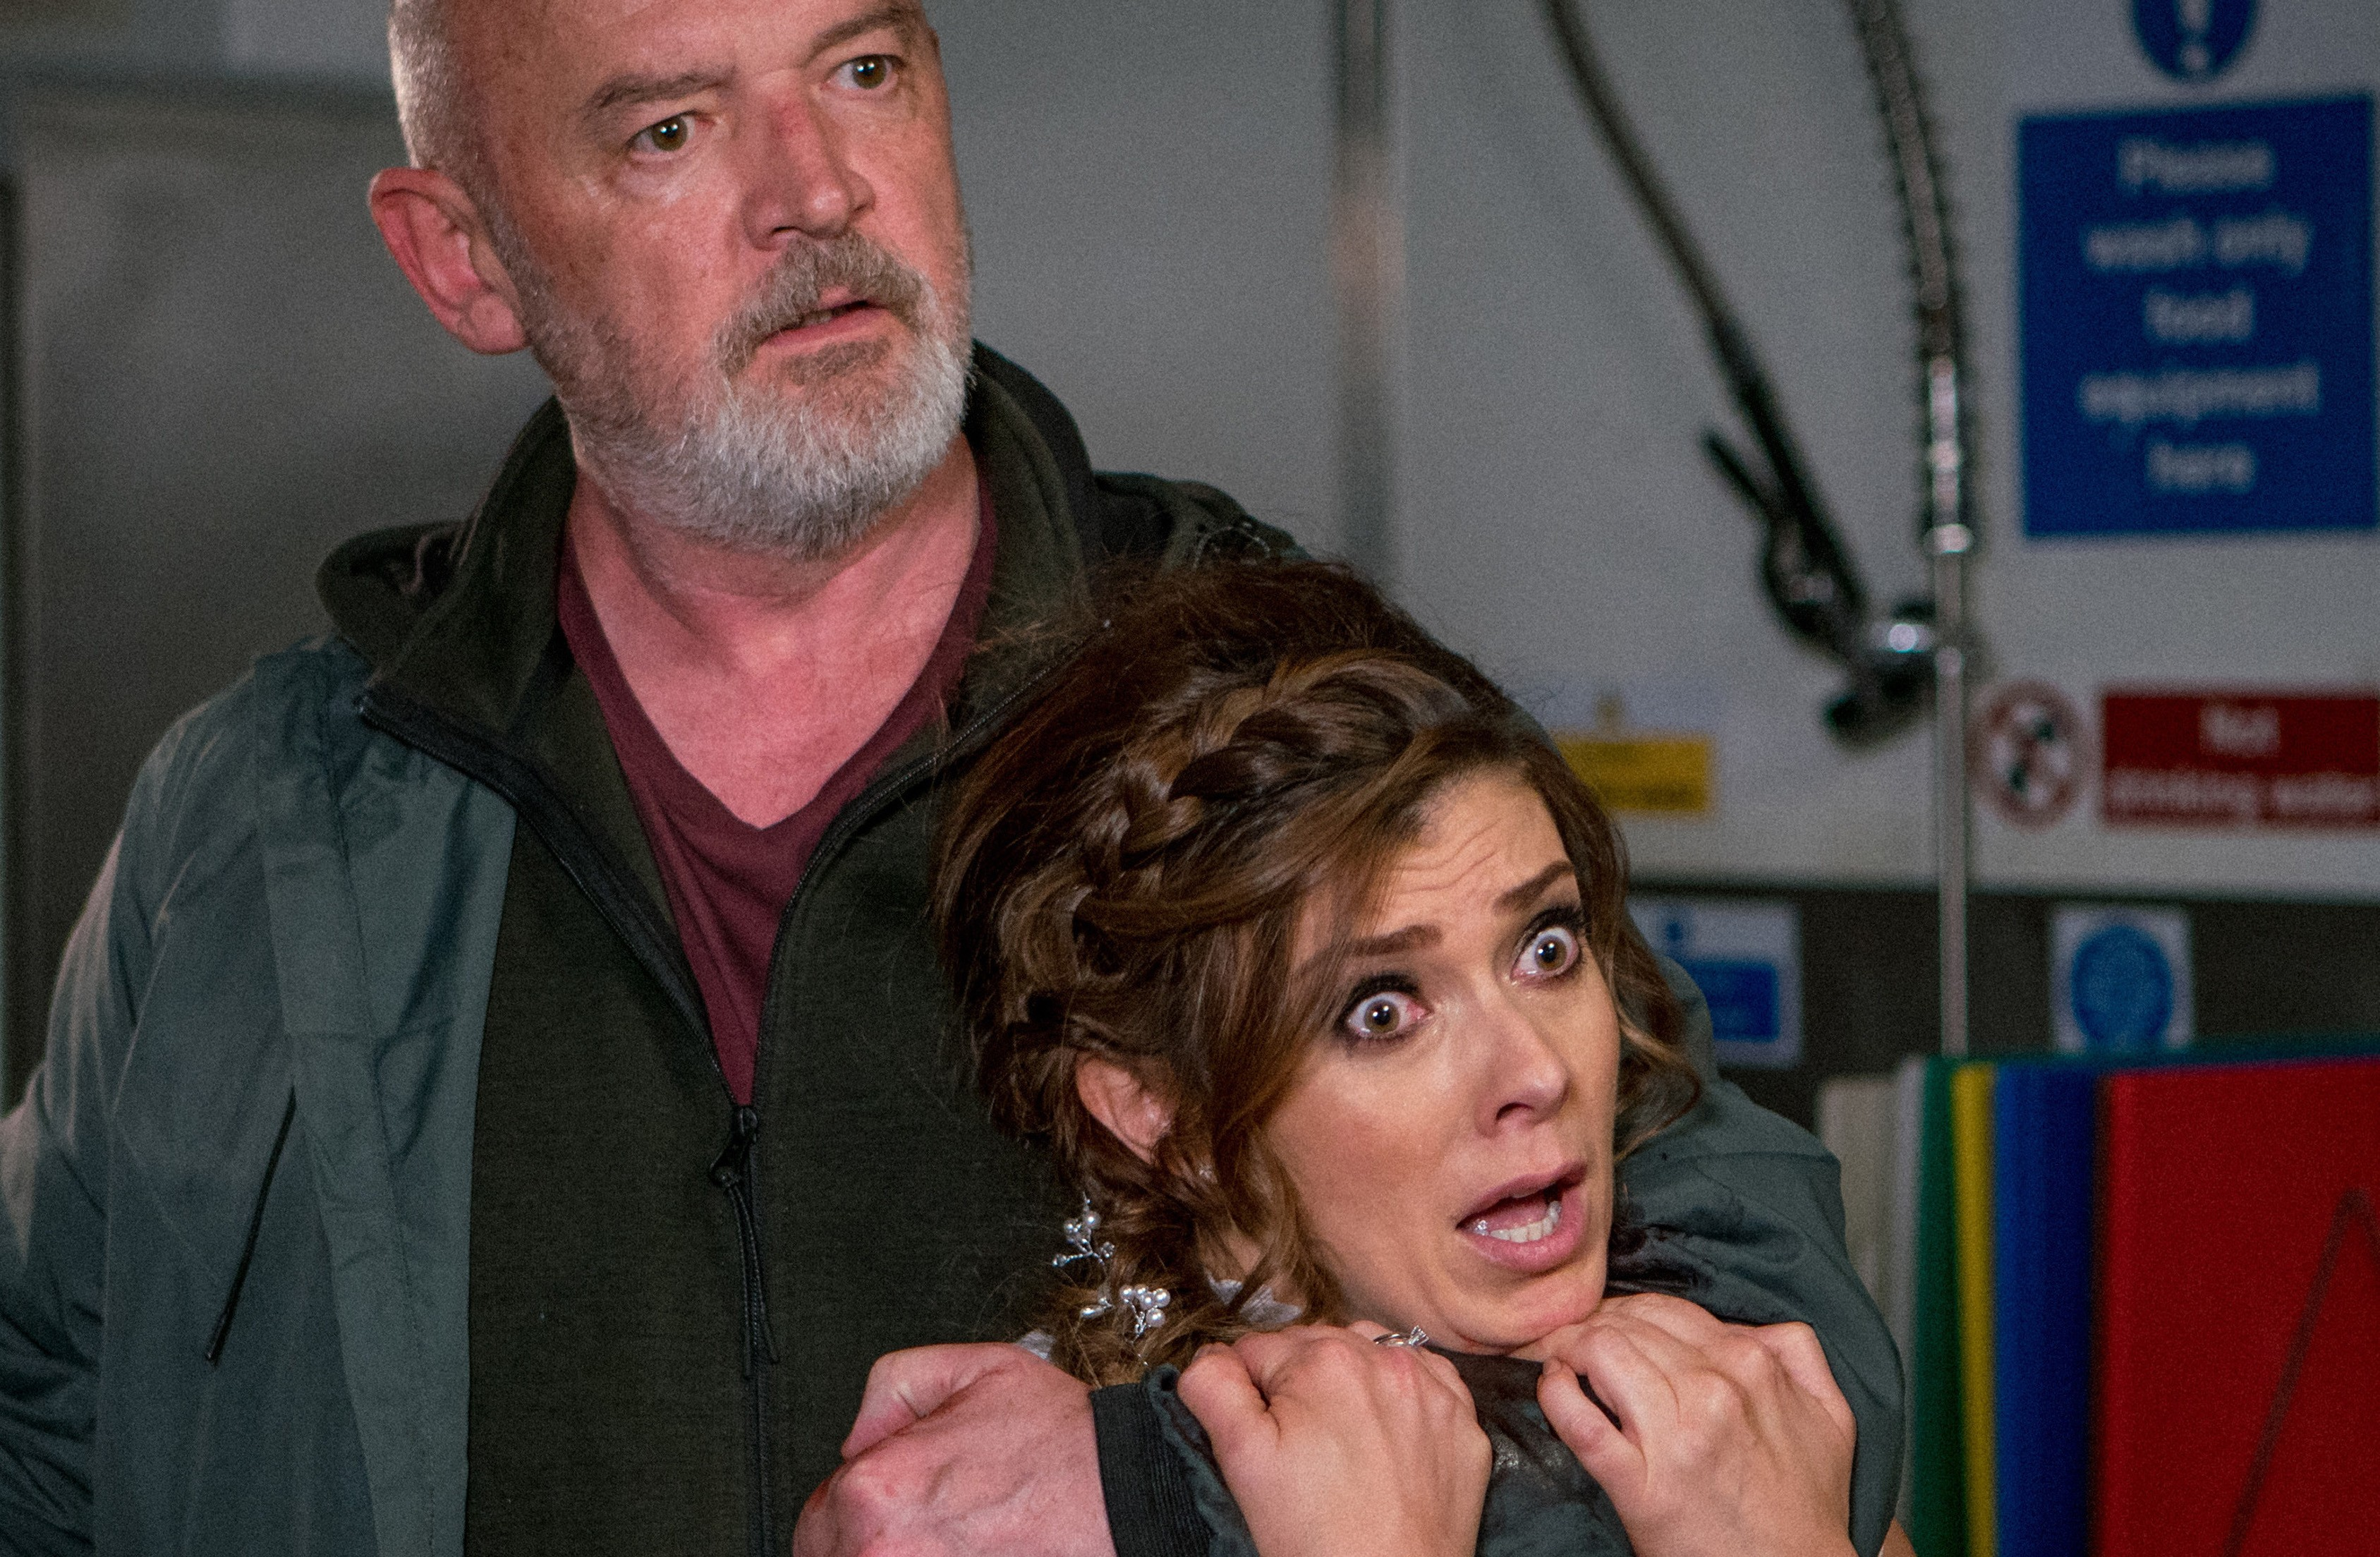 FROM ITV STRICT EMBARGO - No Use Before 0001 Sunday 27th May 2018Coronation Street - Ep 9470Friday 1st June 2018 Michelle Connor [KYM MARSH] is held hostage by Phelan [CONNOR McINTYRE] at the Bistro Picture contact - david.crook@itv.comPhotographer - Mark BruceThis photograph is (C) ITV Plc and can only be reproduced for editorial purposes directly in connection with the programme or event mentioned above, or ITV plc. Once made available by ITV plc Picture Desk, this photograph can be reproduced once only up until the transmission [TX] date and no reproduction fee will be charged. Any subsequent usage may incur a fee. This photograph must not be manipulated [excluding basic cropping] in a manner which alters the visual appearance of the person photographed deemed detrimental or inappropriate by ITV plc Picture Desk. This photograph must not be syndicated to any other company, publication or website, or permanently archived, without the express written permission of ITV Plc Picture Desk. Full Terms and conditions are available on the website www.itvpictures.com